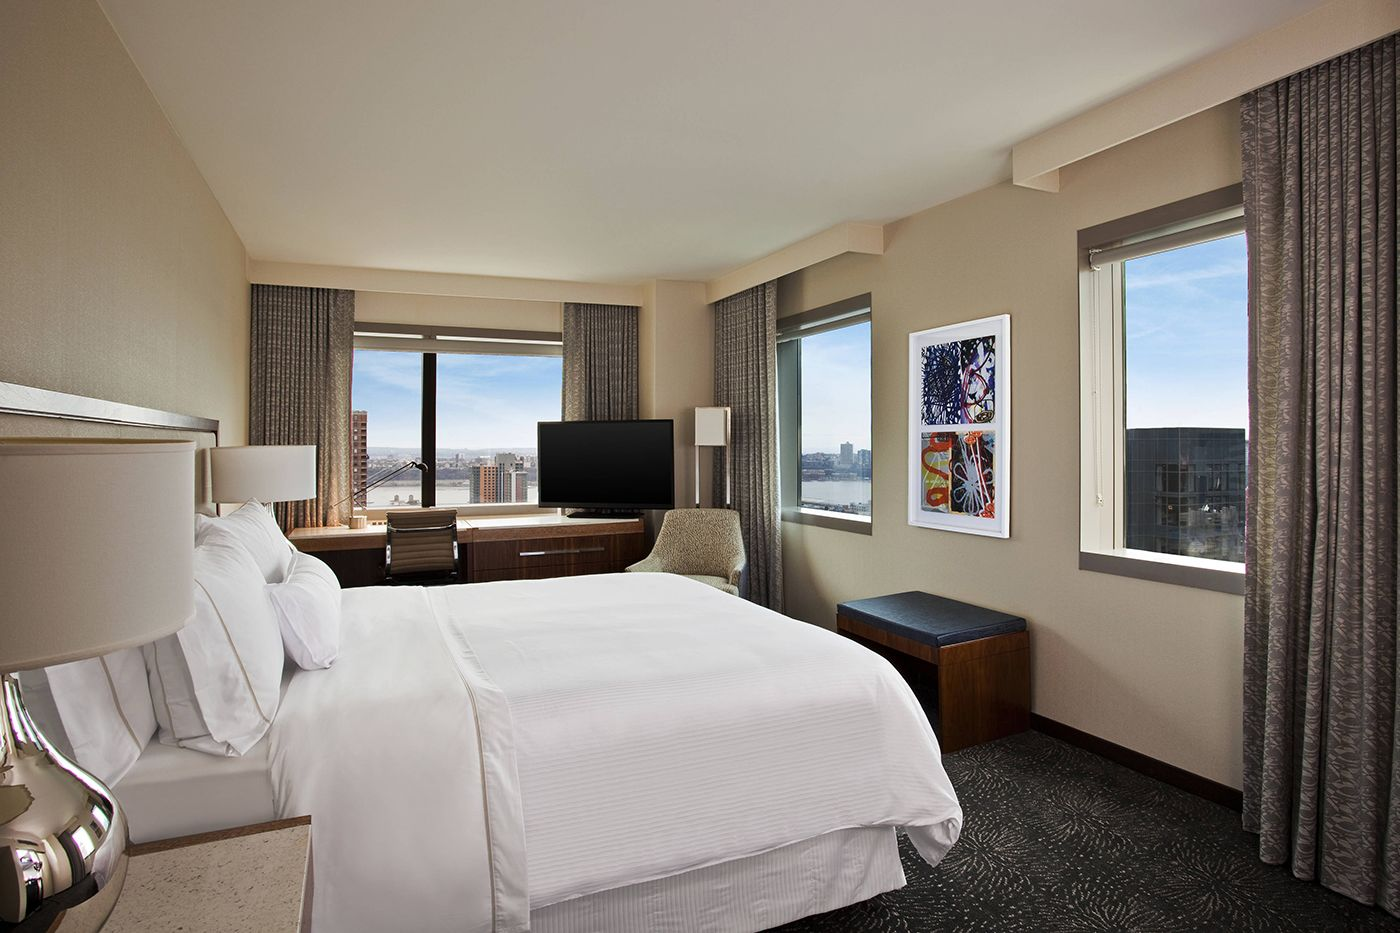 Hotel room at the Westin in new york Time Square Courtesy of The Westin New York Times Square